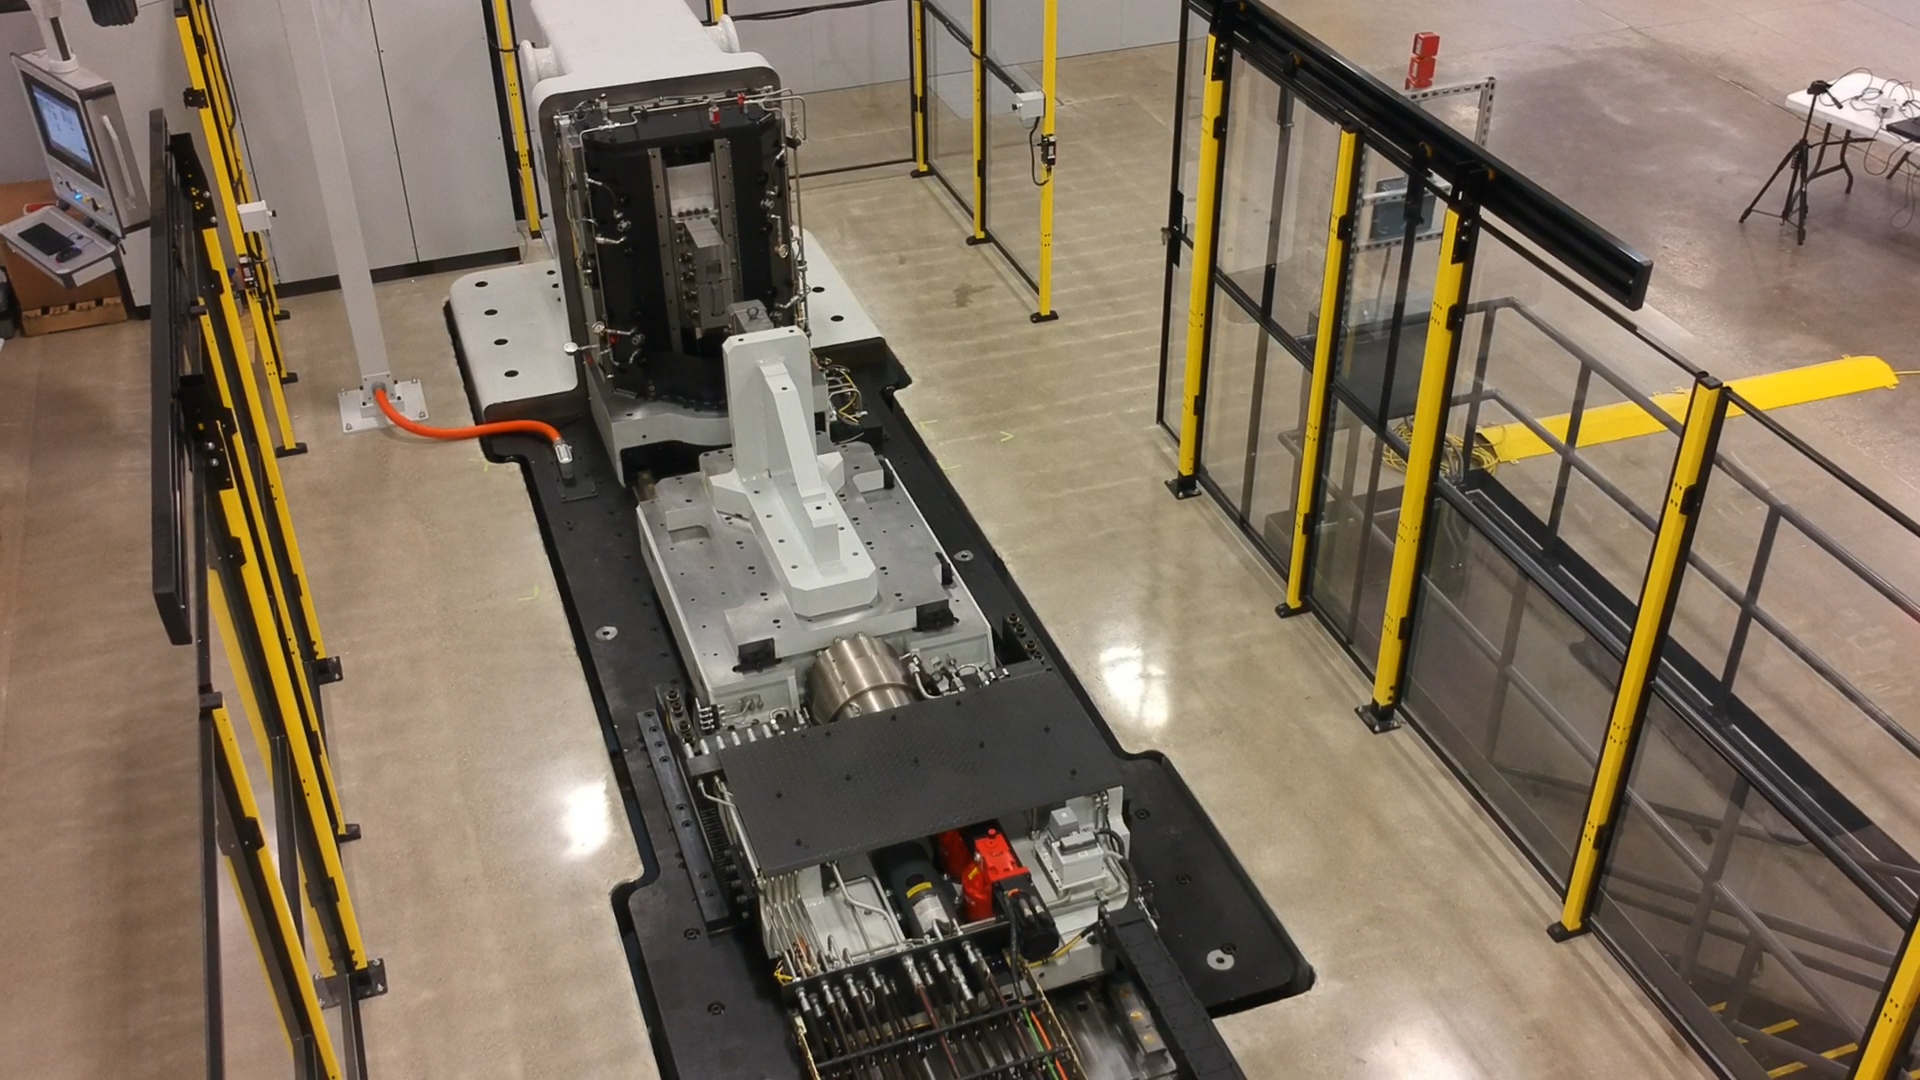 North America's First Linear Friction Welder for Full-Sized Part Development Now Operational in Detroit